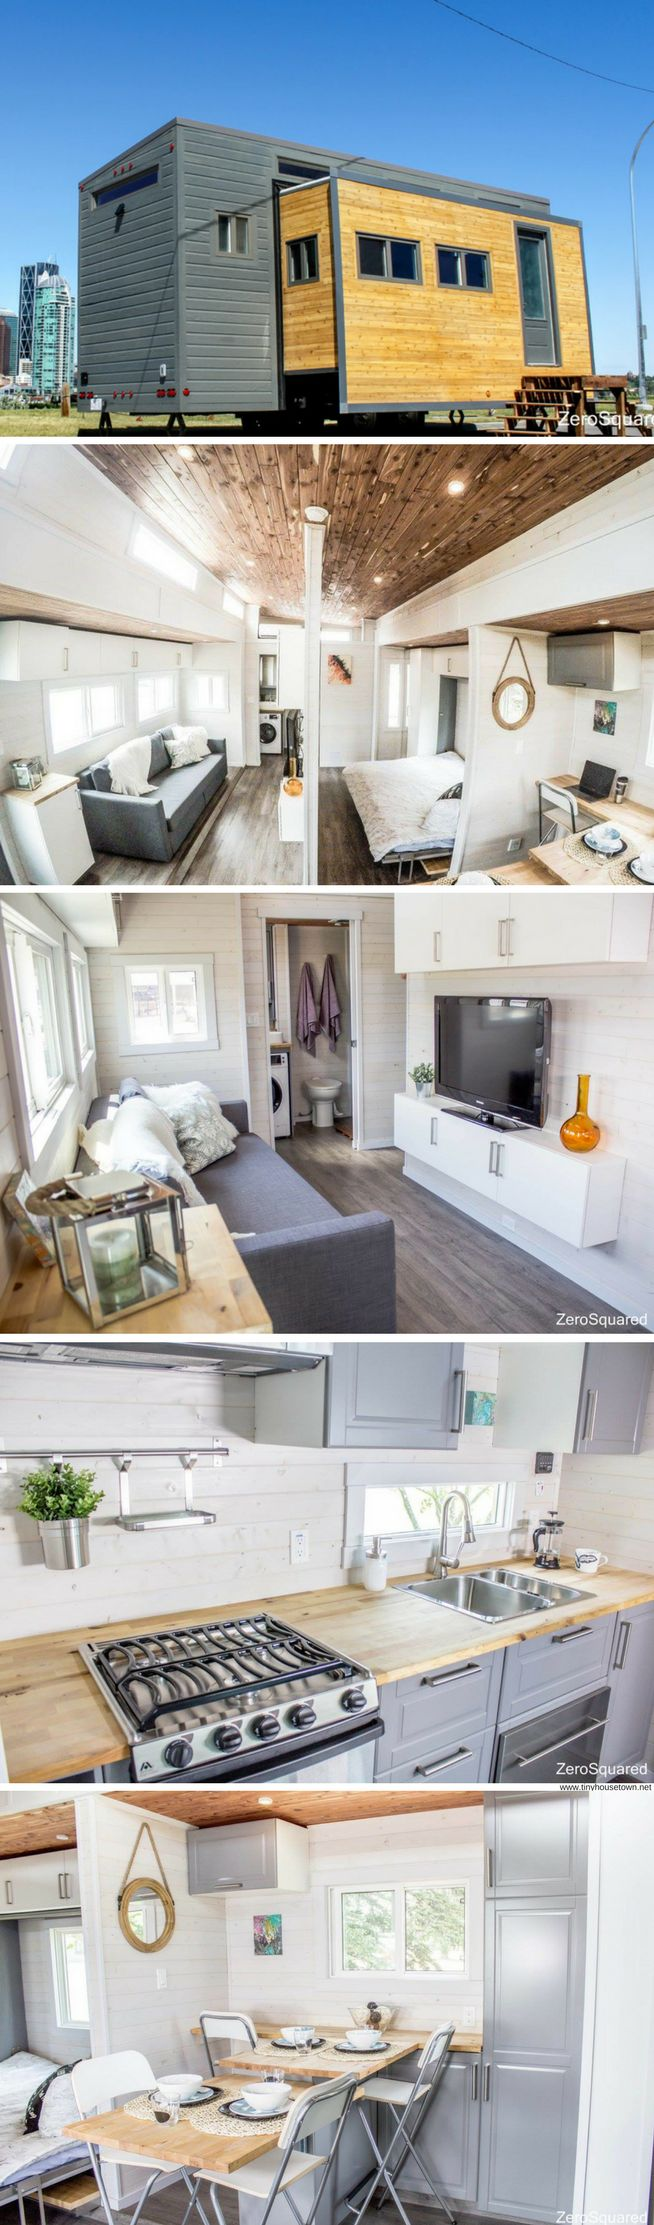 The Aurora tiny home from ZeroSquared